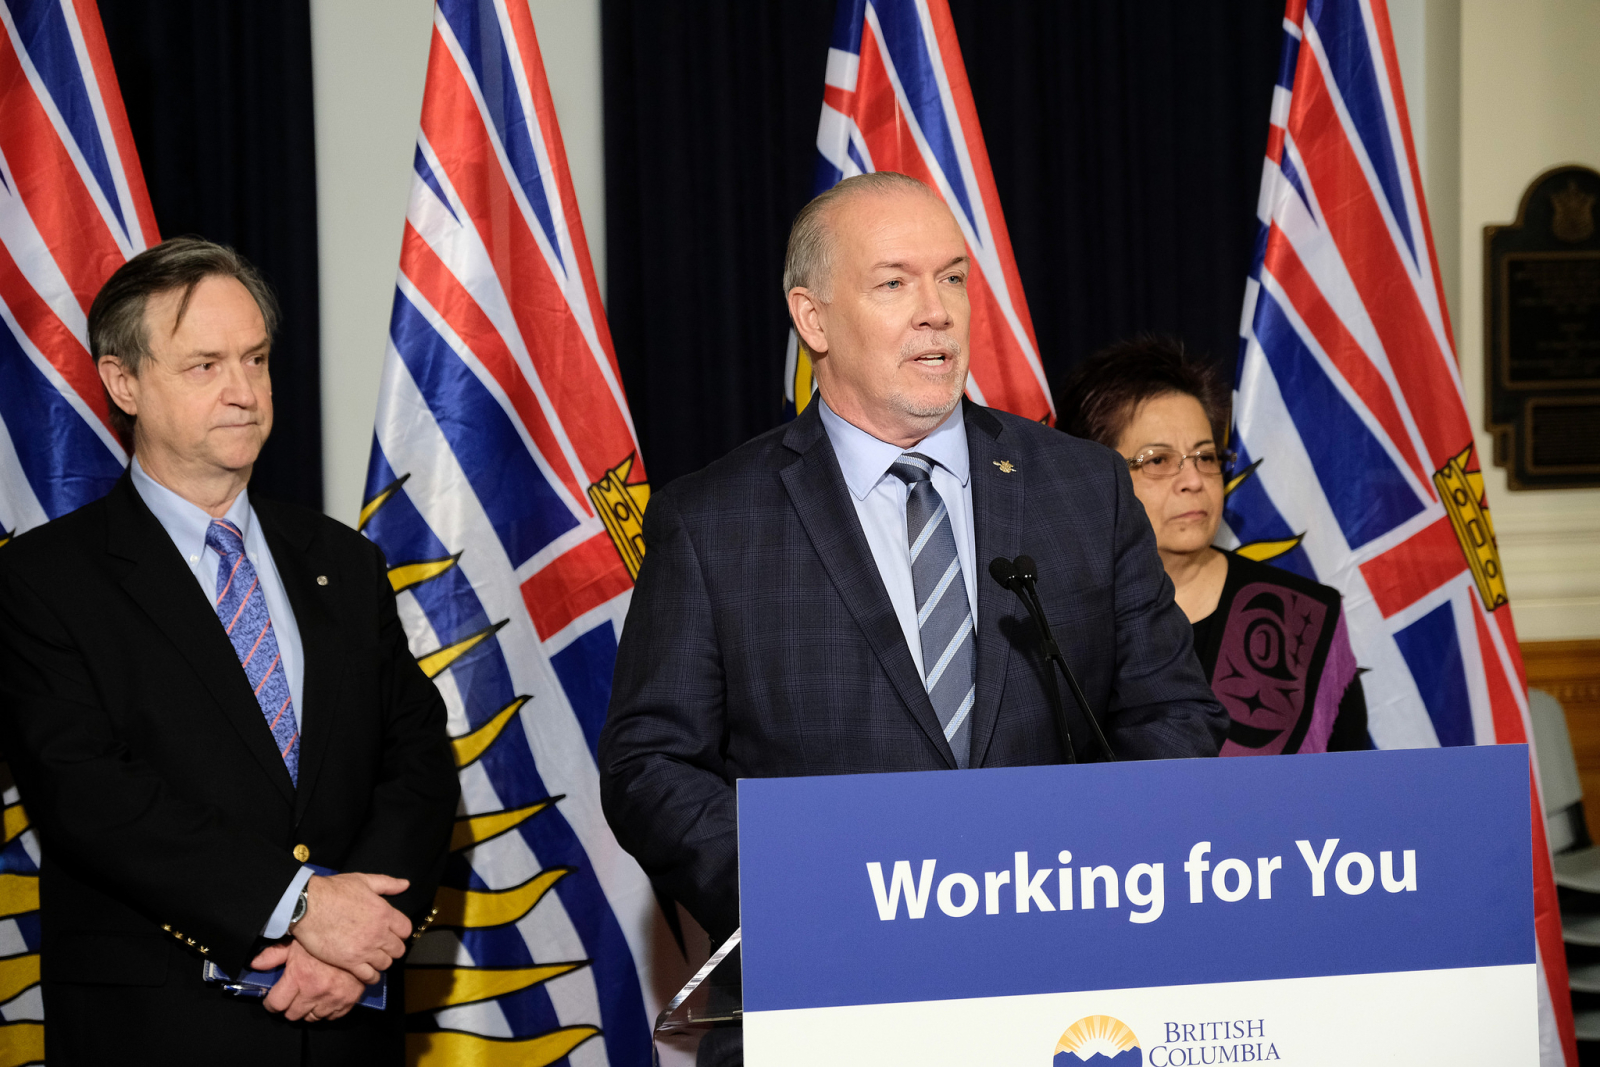 B.C. Premier John Horgan (centre) announced Monday that George Abbott (left) and Chief Maureen Chapman (right) will lead a review of B.C.'s unprecedented 2017 fire season. Photo provided by the Province of British Columbia